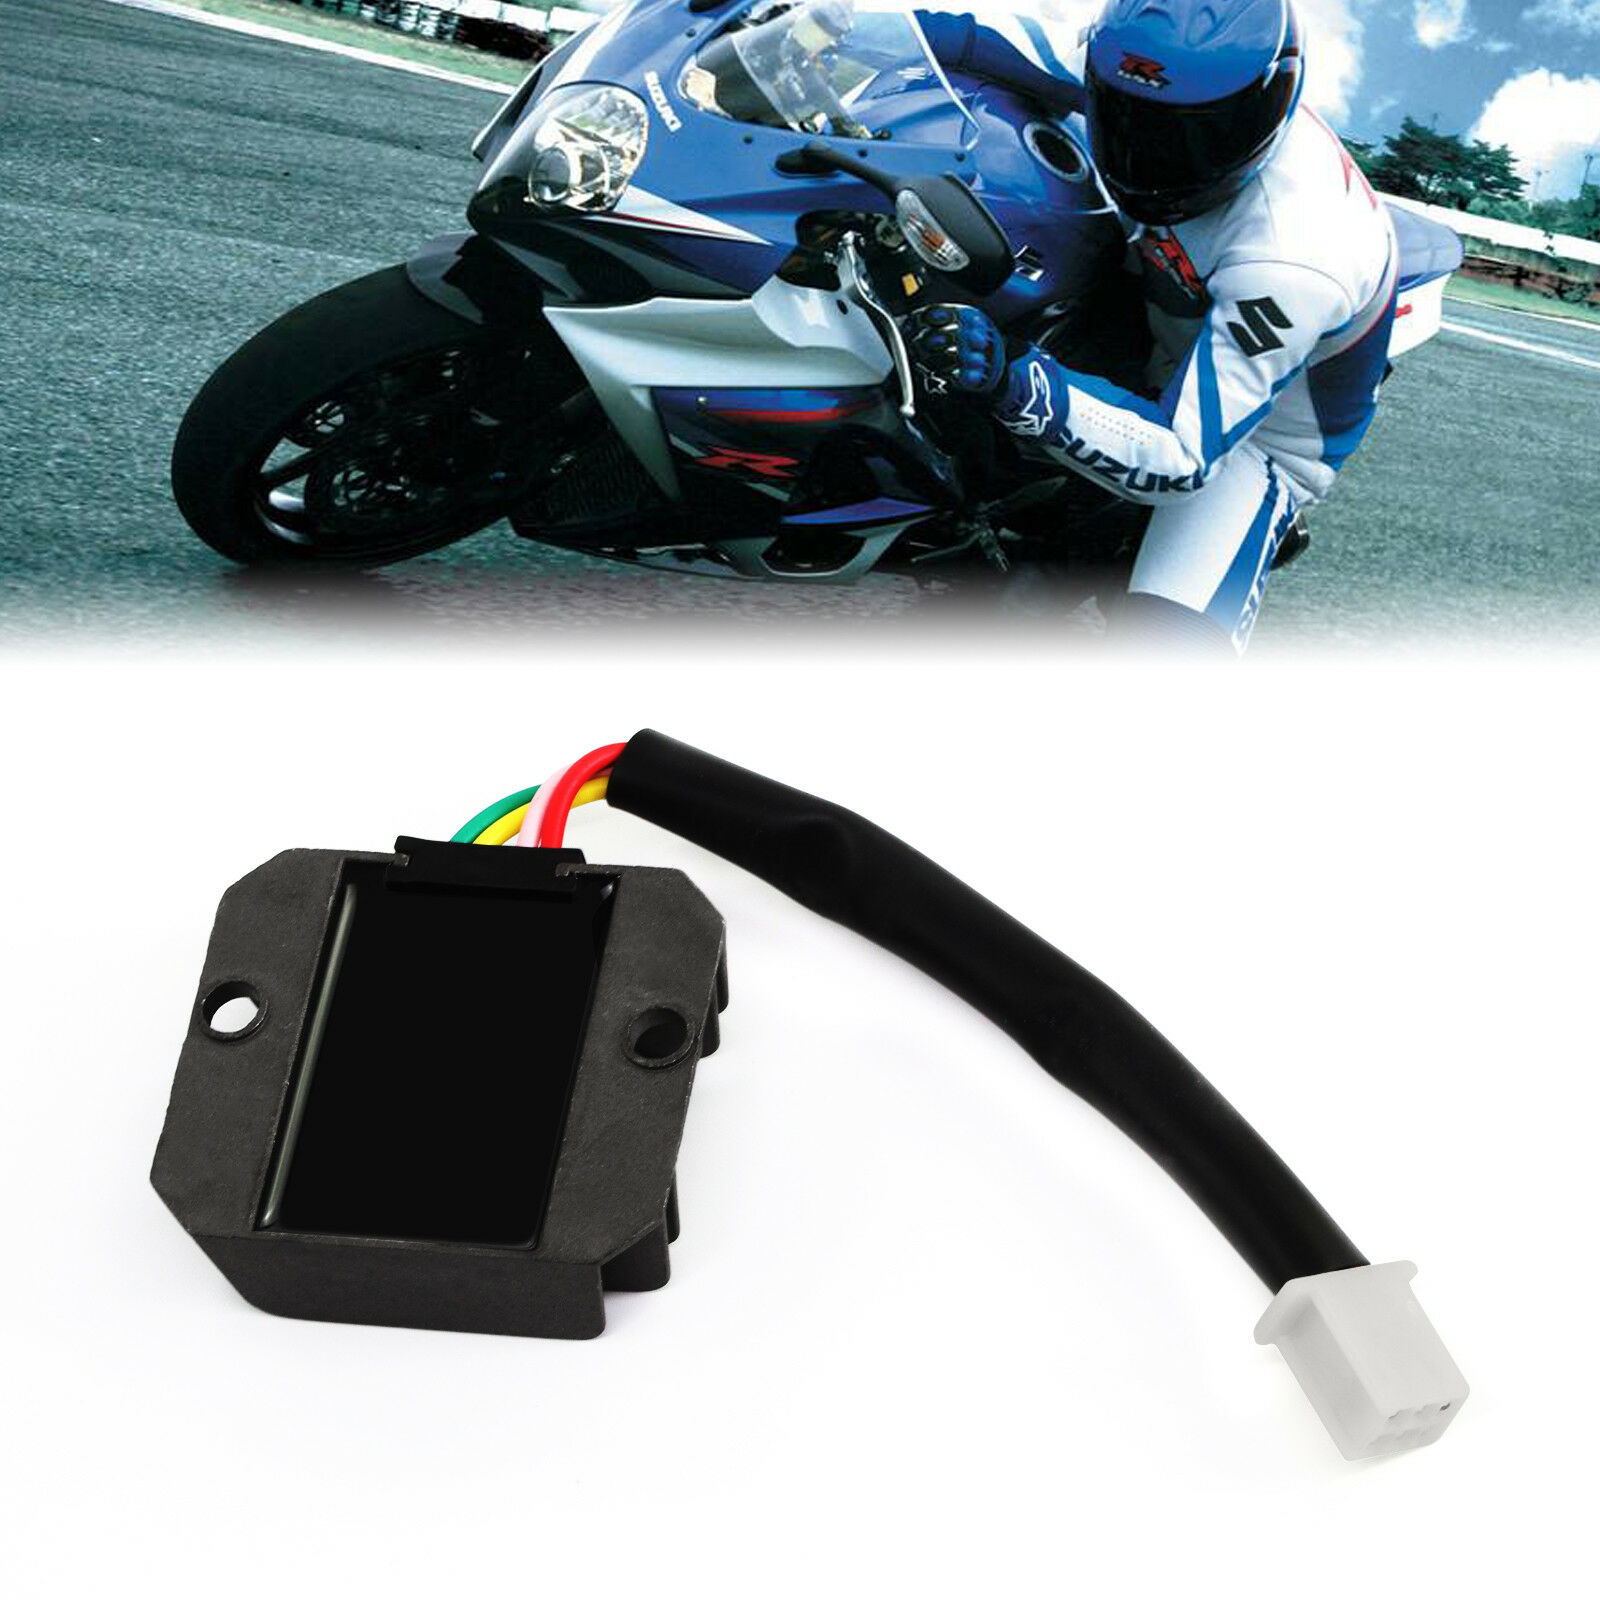 4 Wire Full Wave Motorcycle Regulator Rectifier 12v Dc Bike Quad Honda Cb400 Wiring Diagram Norton Secured Powered By Verisign